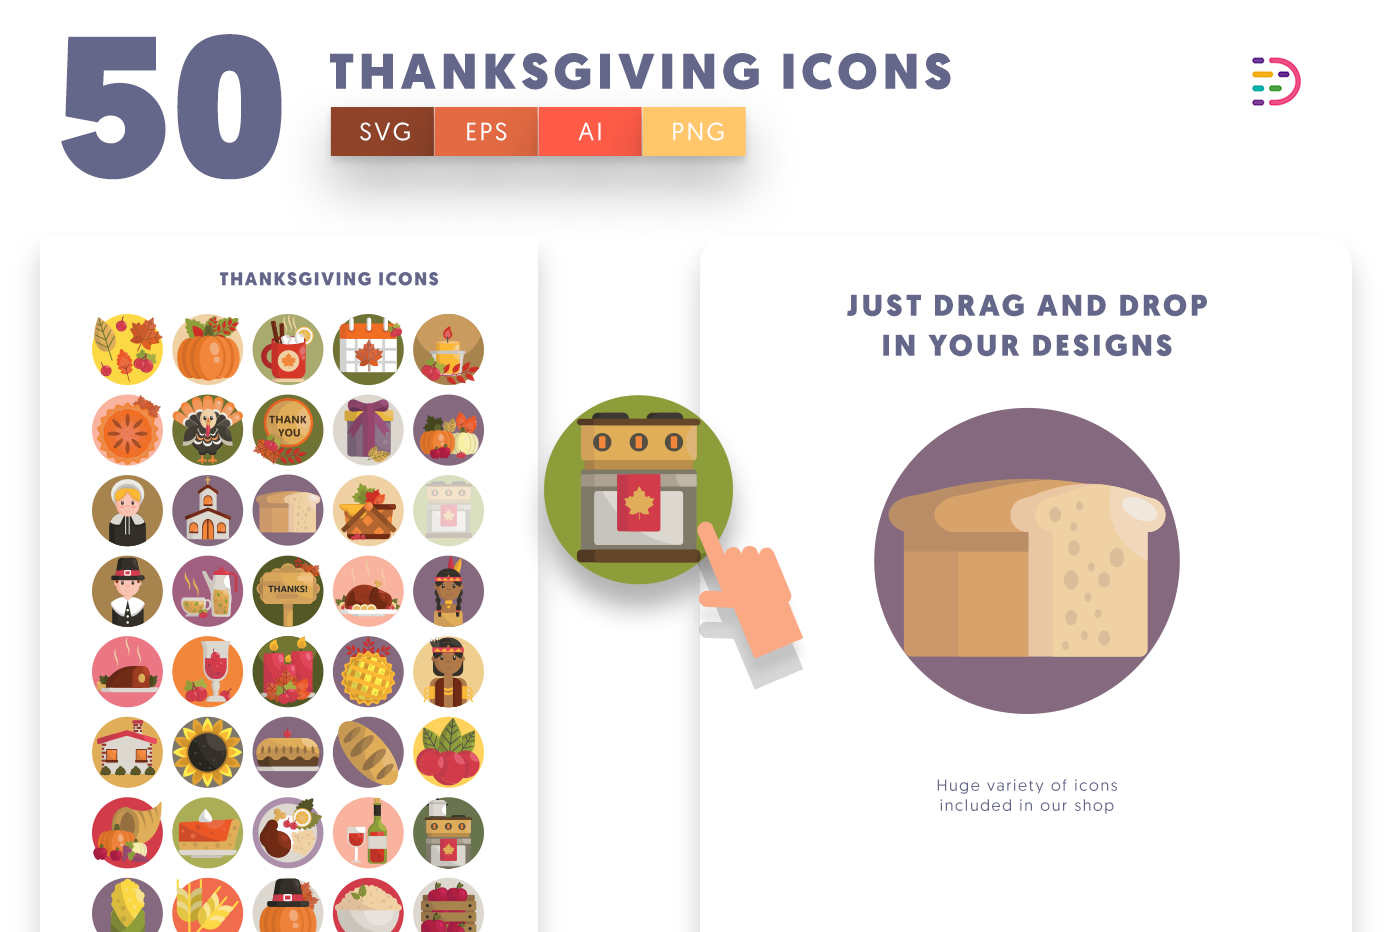 Drag and drop vector 50 Thanksgiving Icons